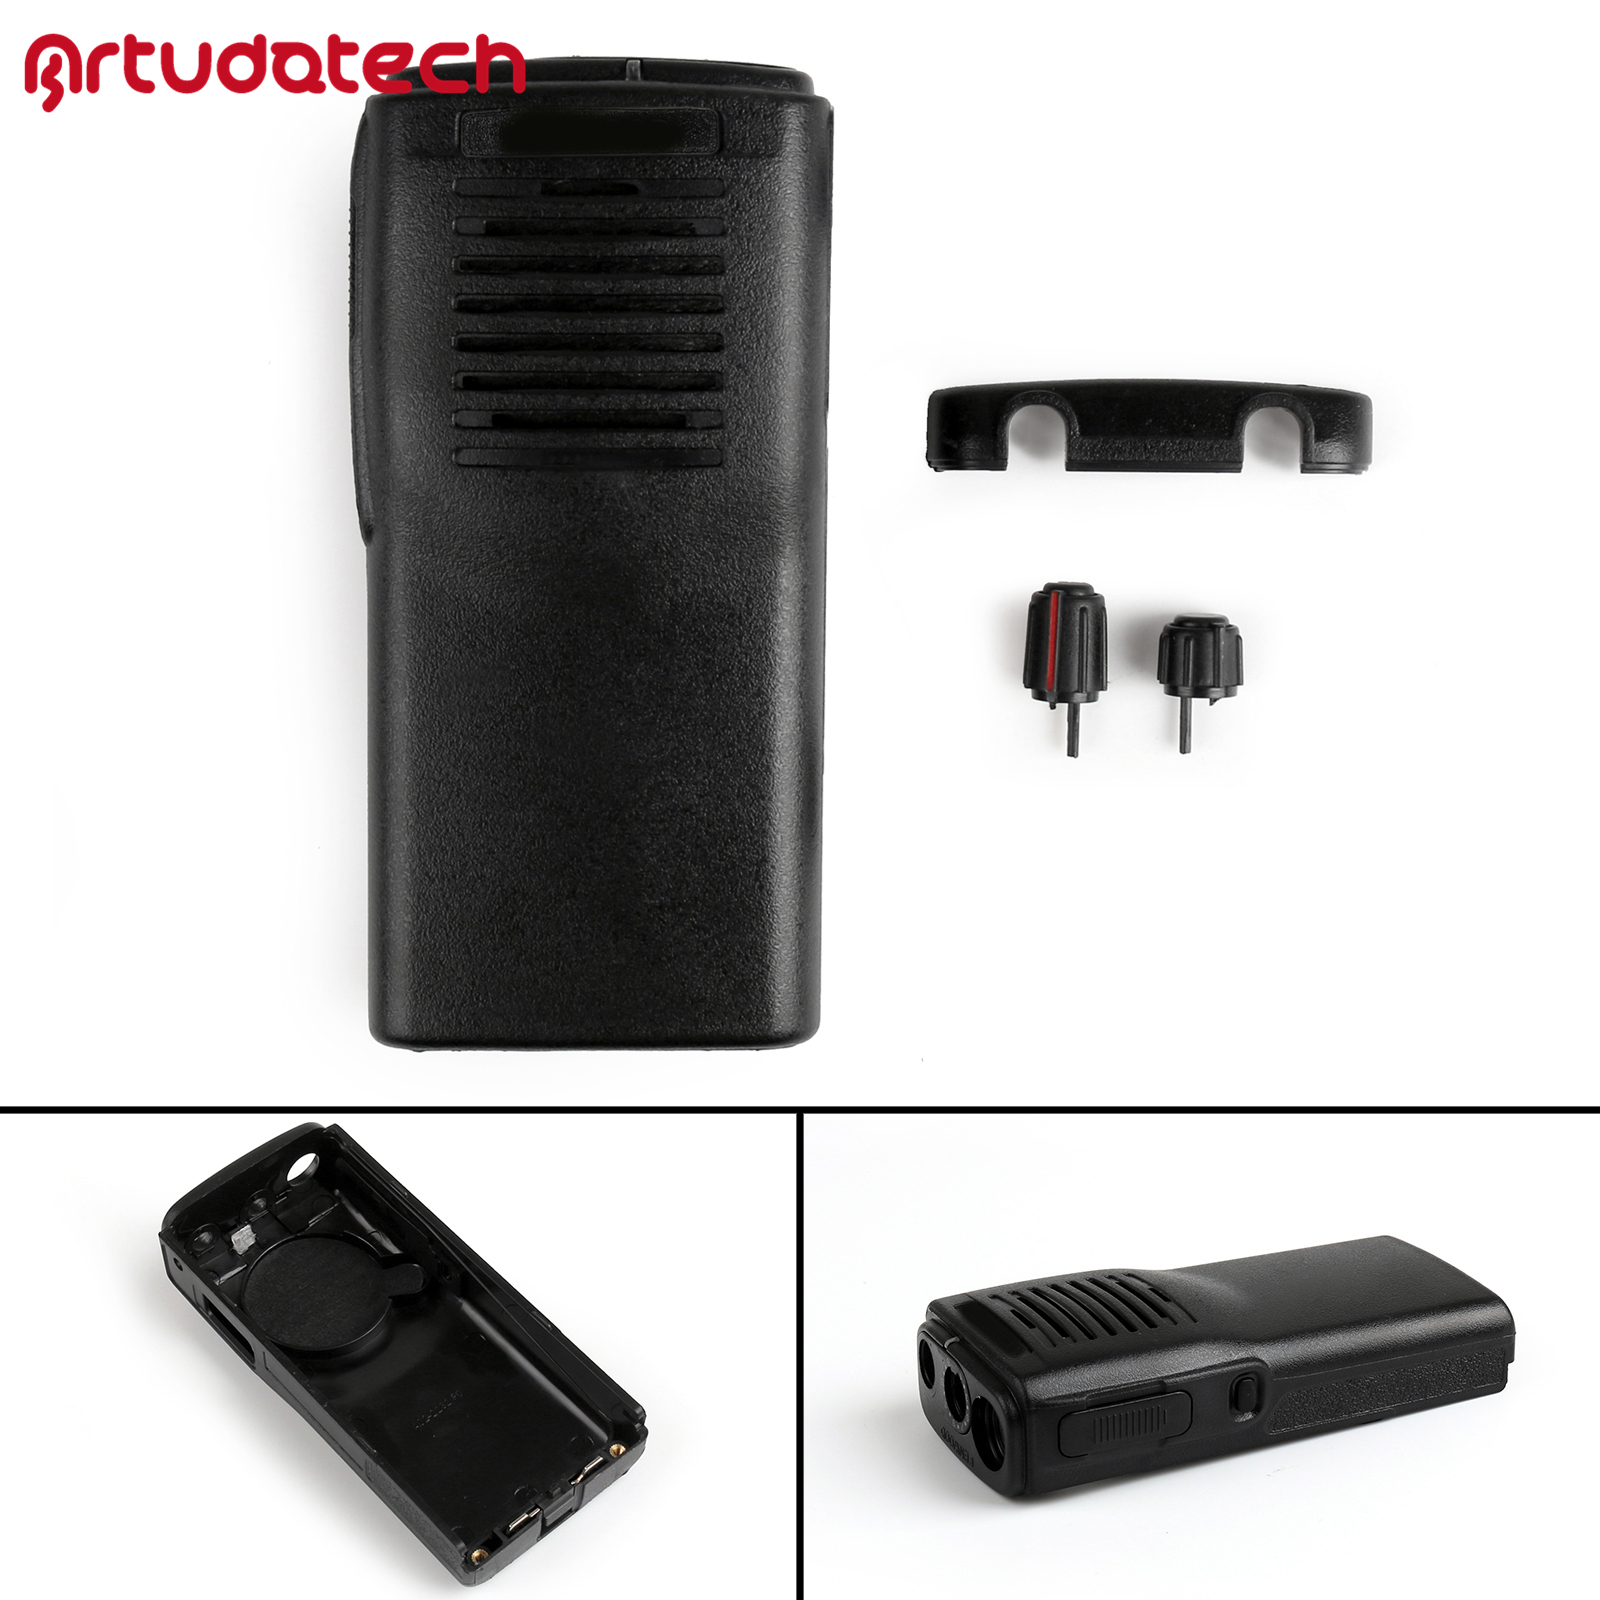 Artudatech Front Outer Case Housing Cover Shell For Kenwood TK3107 TK2107 <font><b>TK</b></font> <font><b>3107</b></font> 2107 Talkie Radio <font><b>Tk</b></font>-<font><b>3107</b></font> image